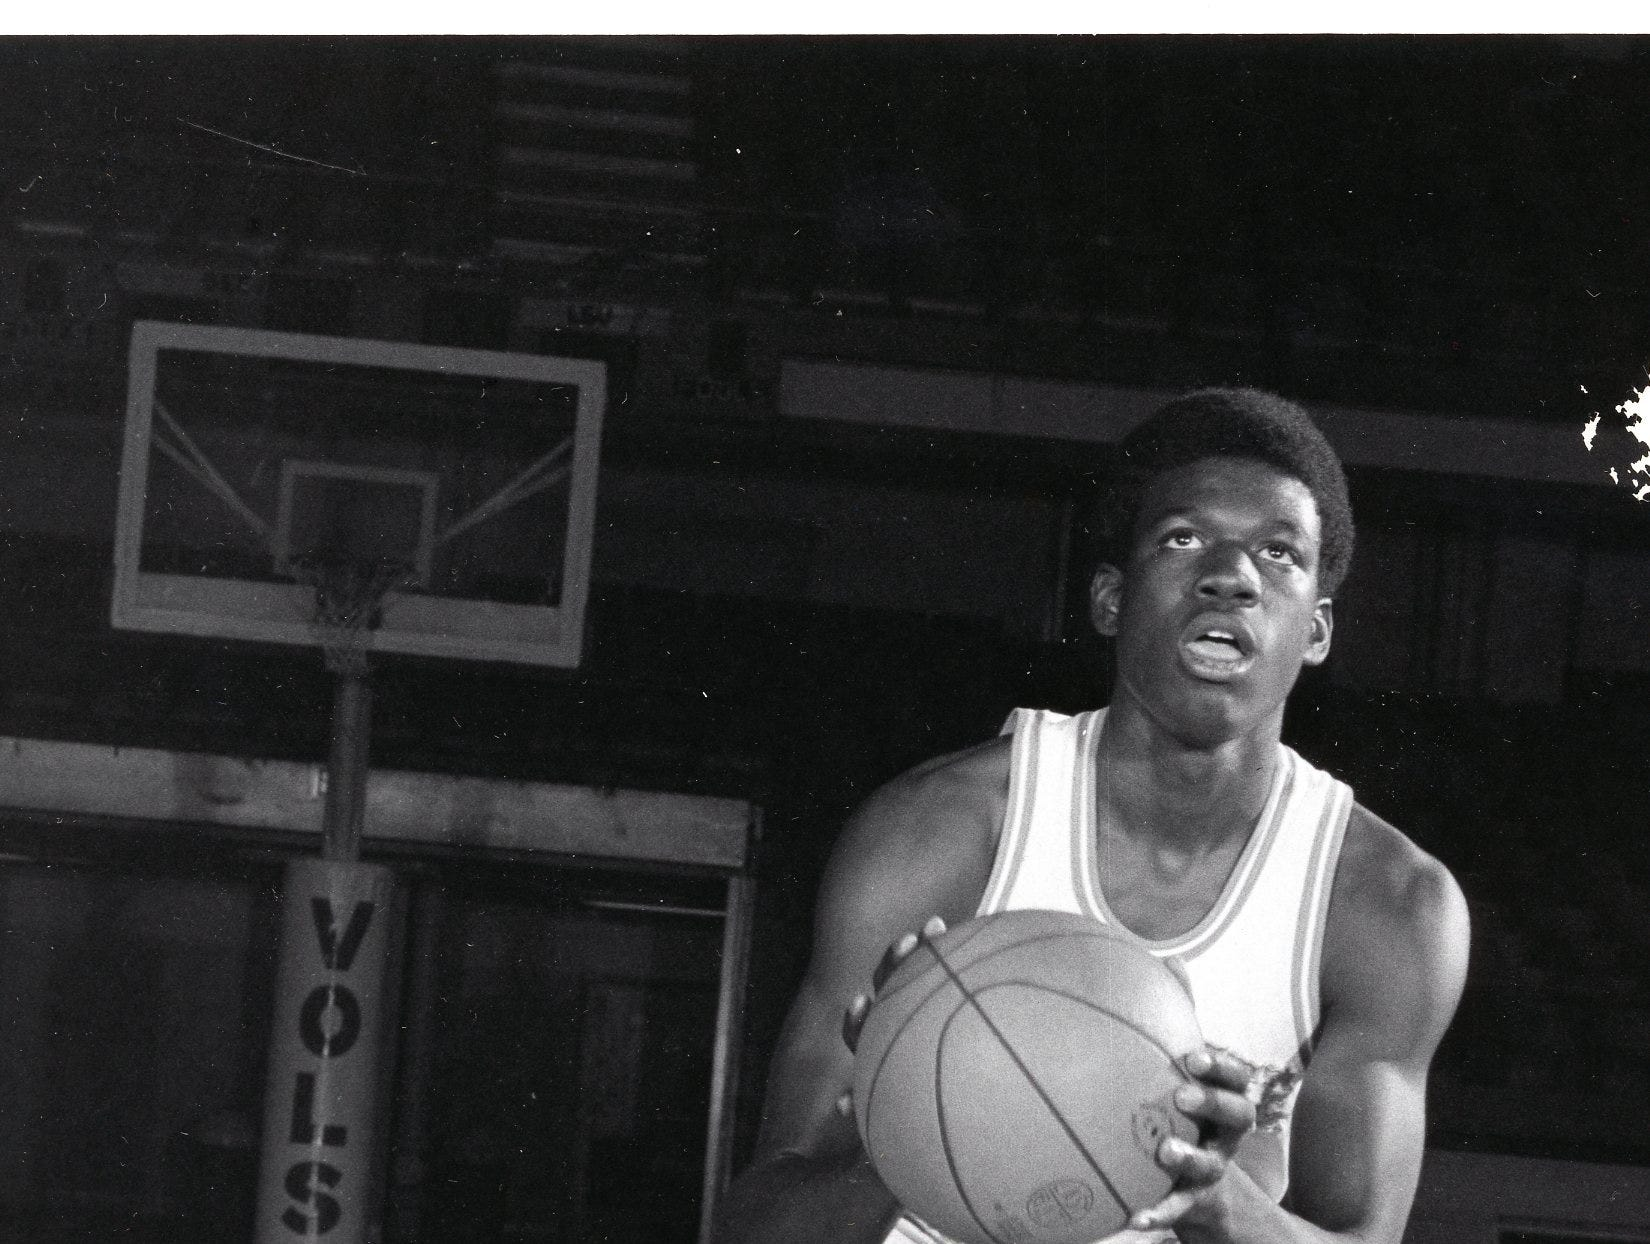 UT Vol Bernard King, February, 1975.